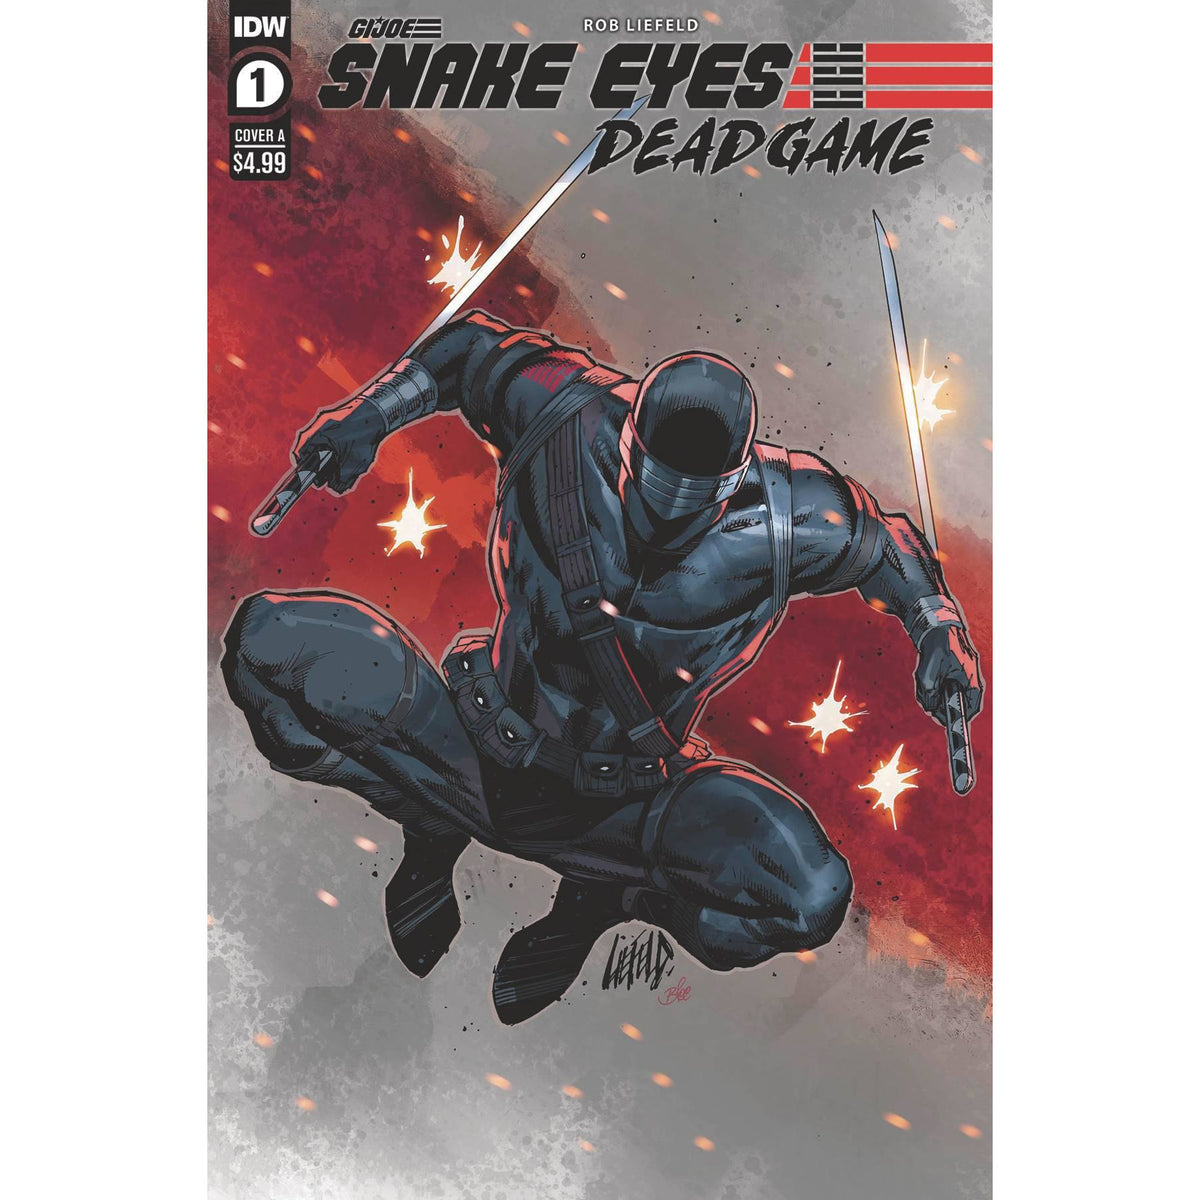 SNAKE EYES DEADGAME #1 COVER A LIEFELD